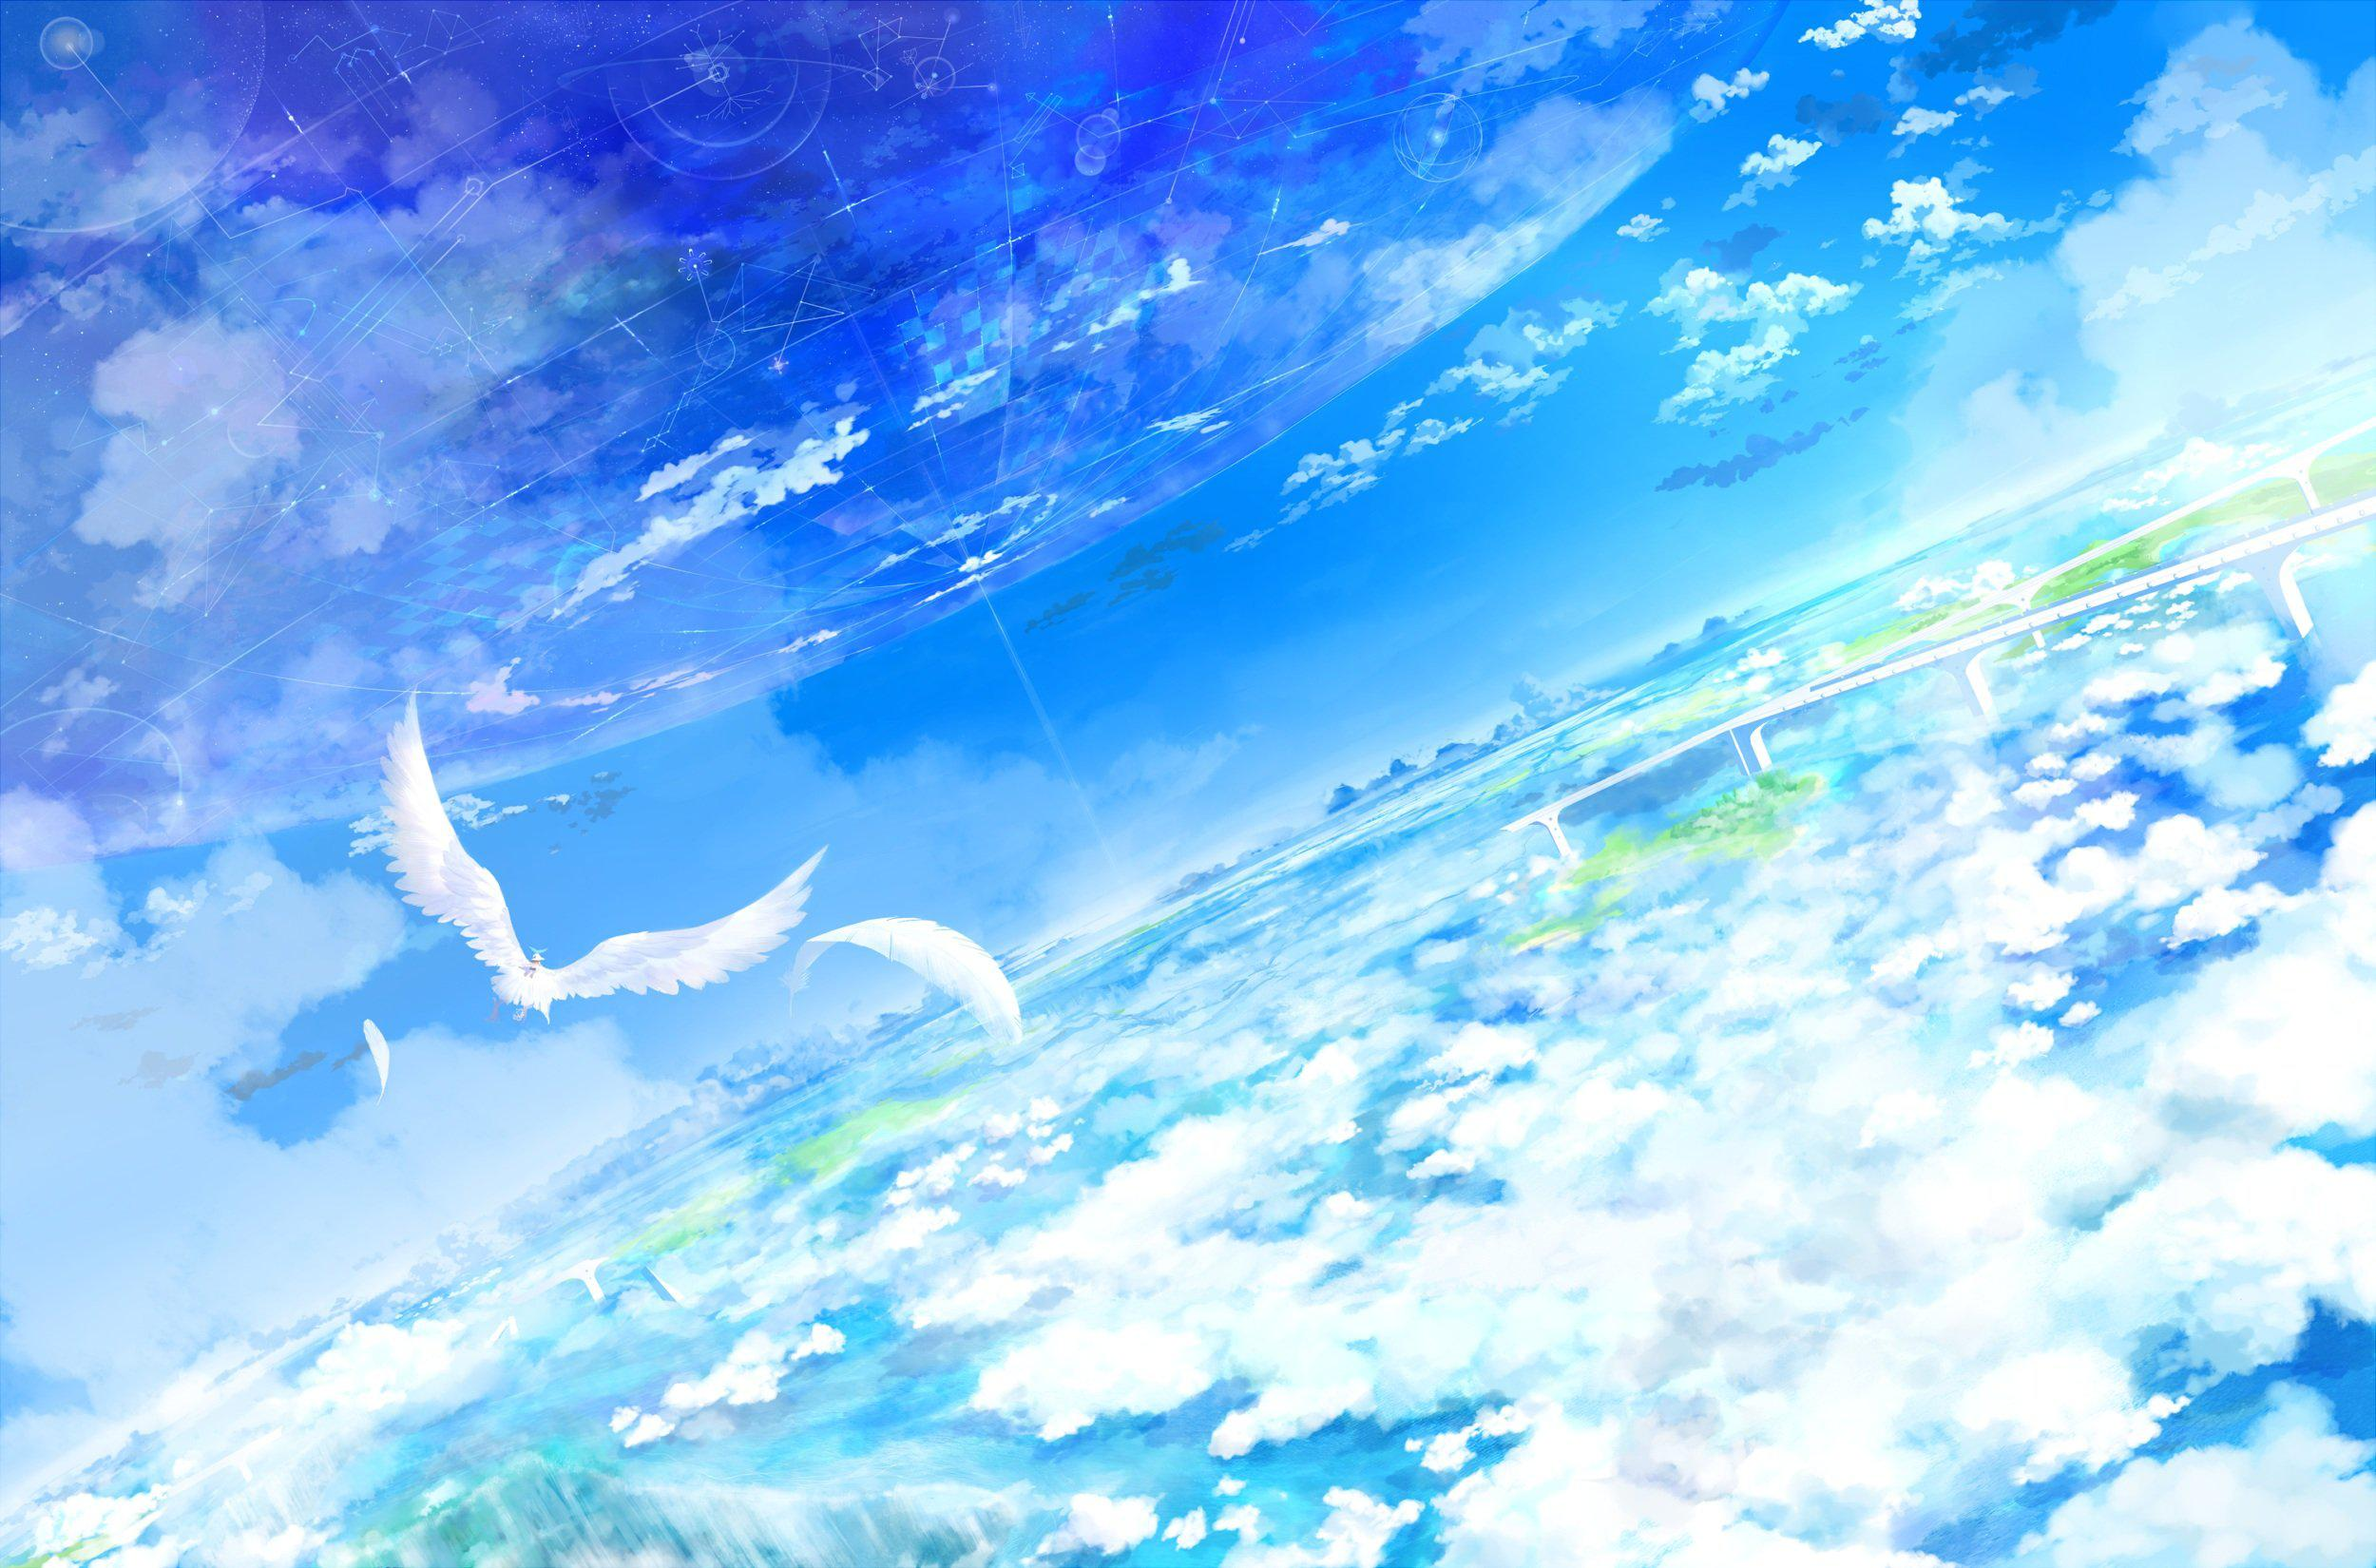 Anime Sky Wallpapers Top Free Anime Sky Backgrounds Wallpaperaccess